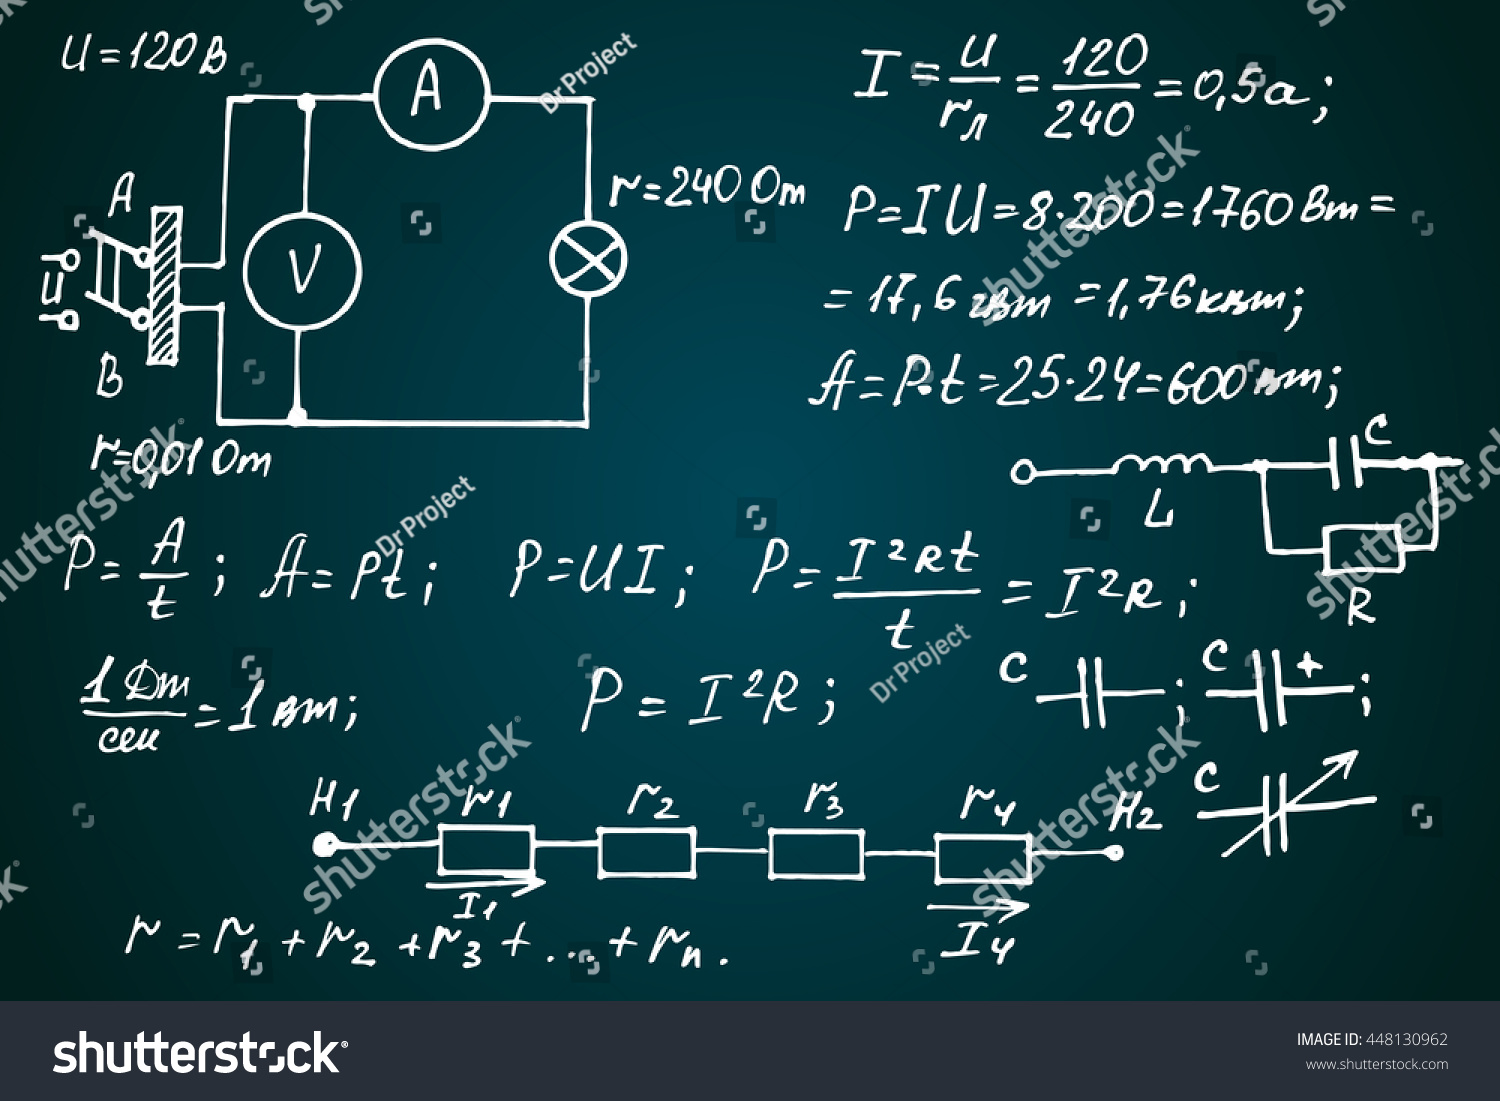 Physics Electronic Engineering Mathematics Equation Calculations ...